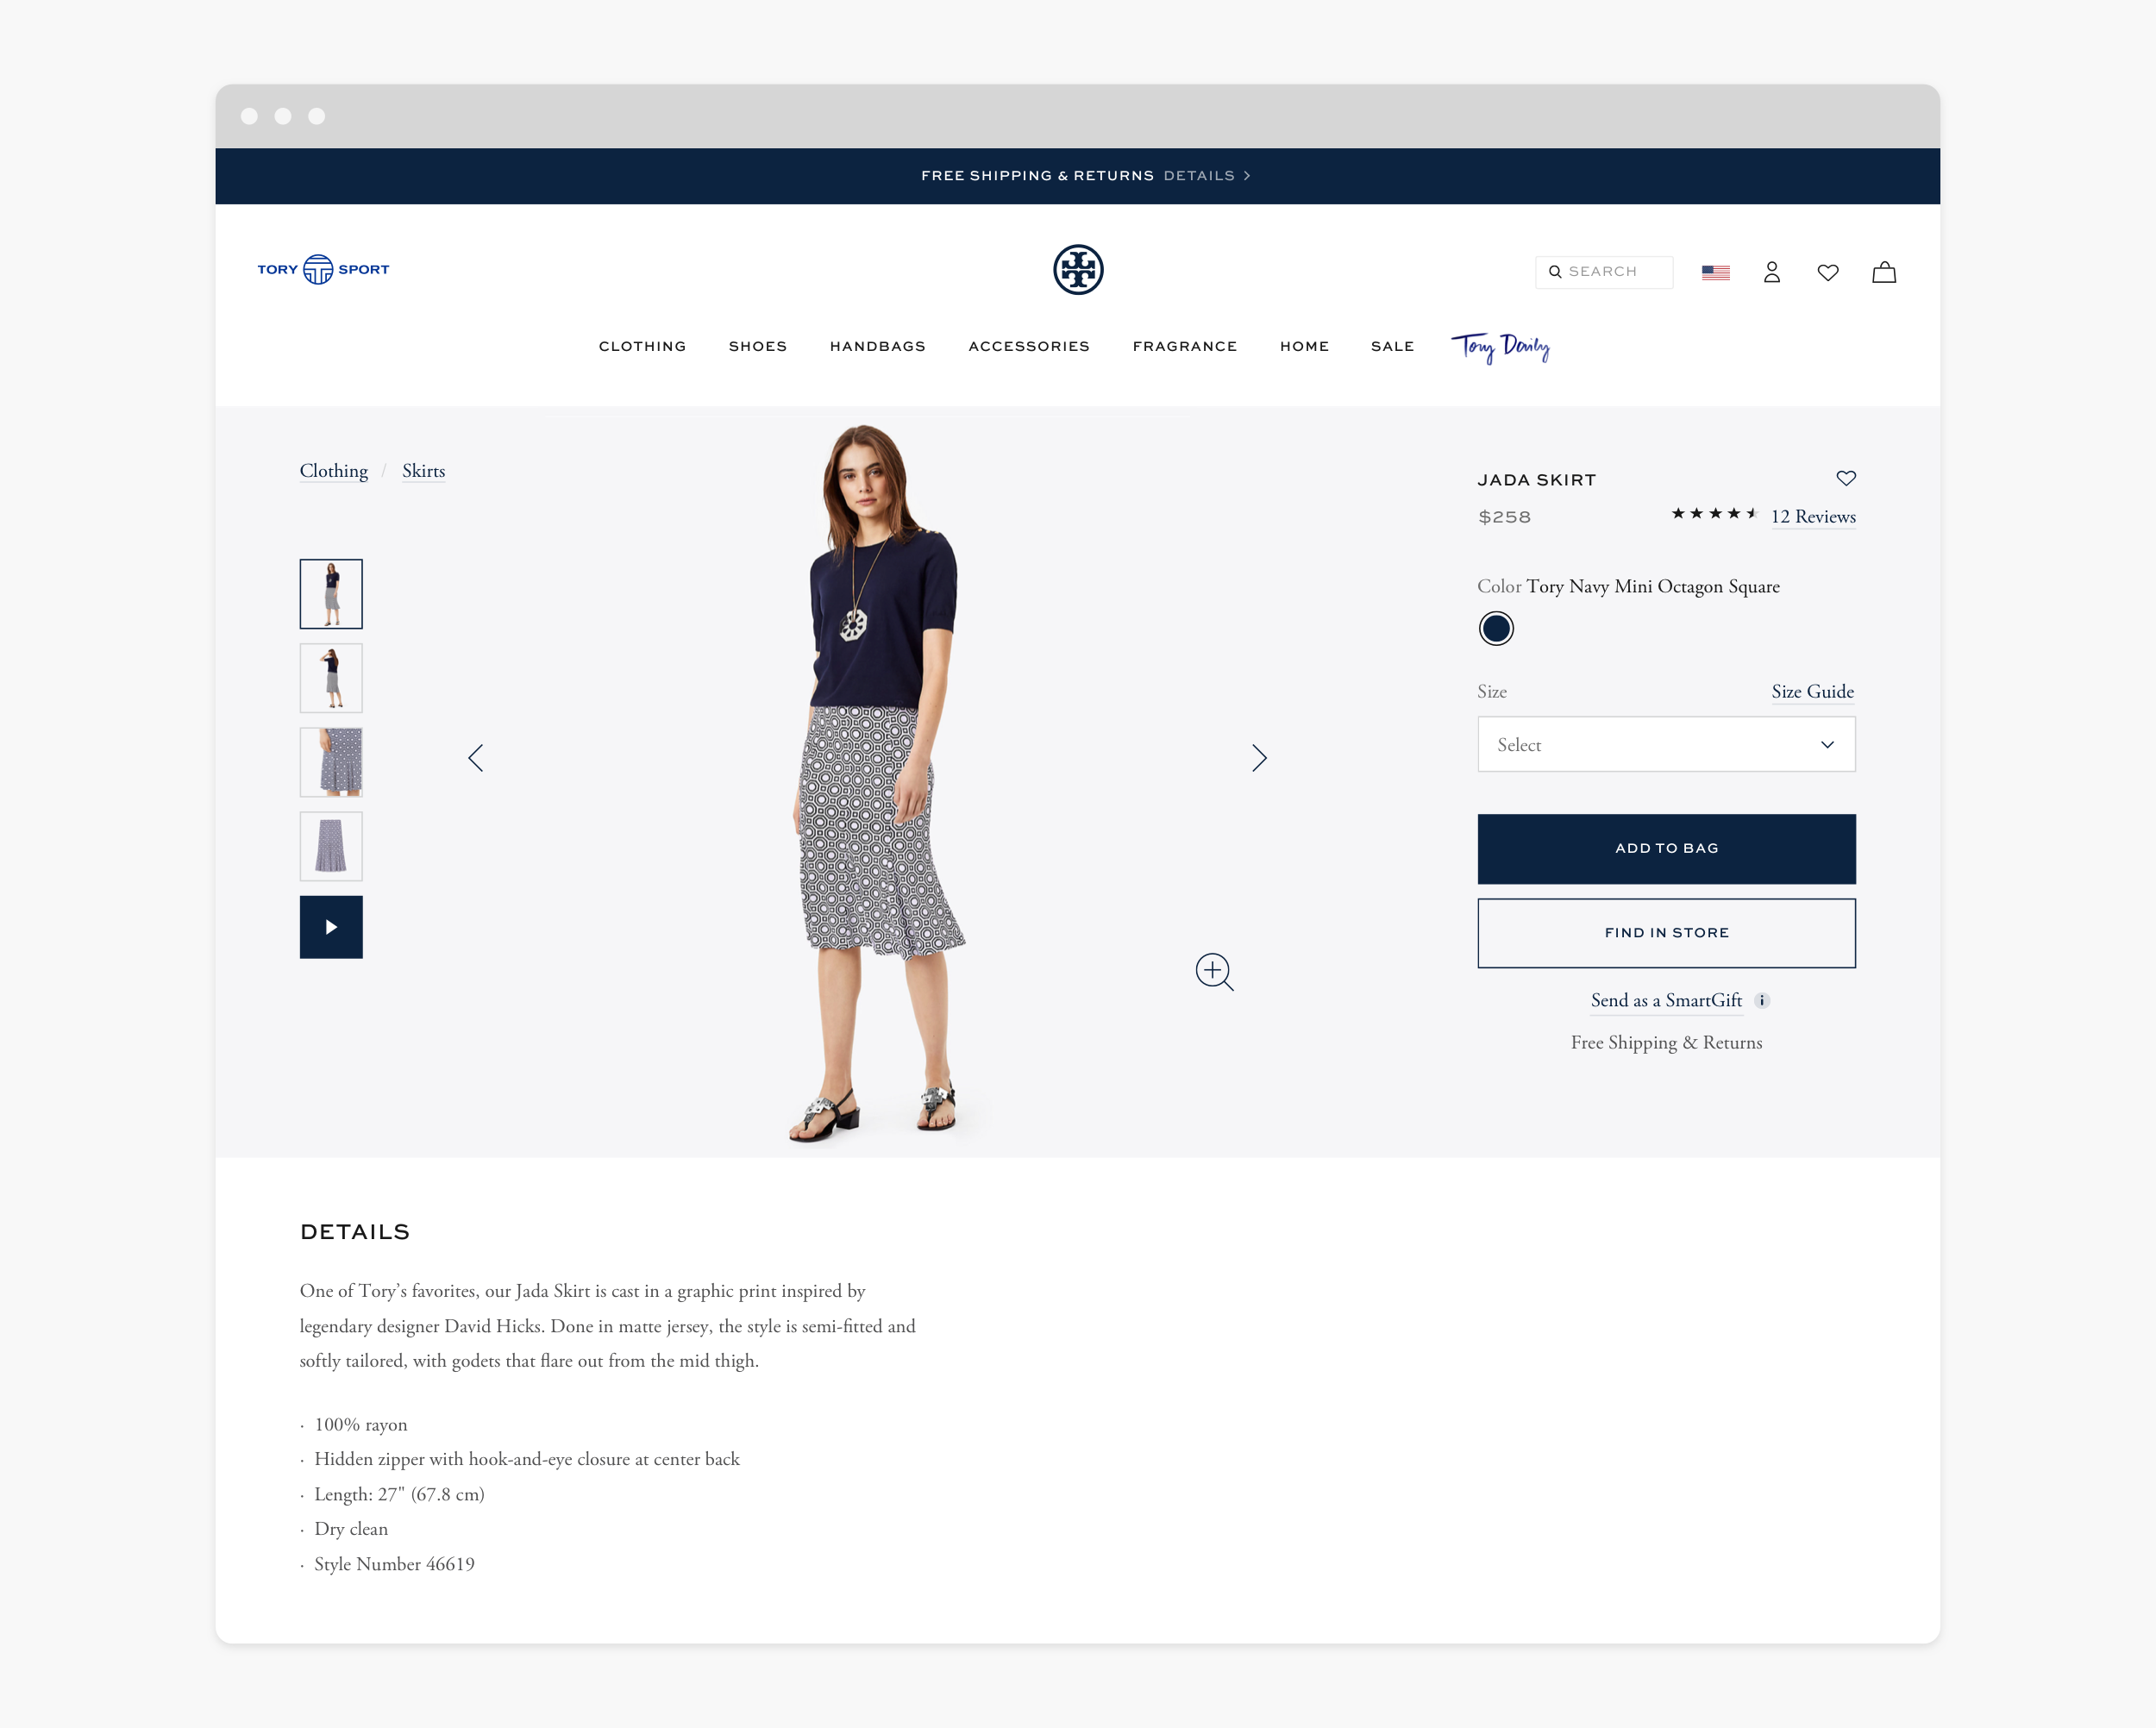 Example of the product design page iteration.